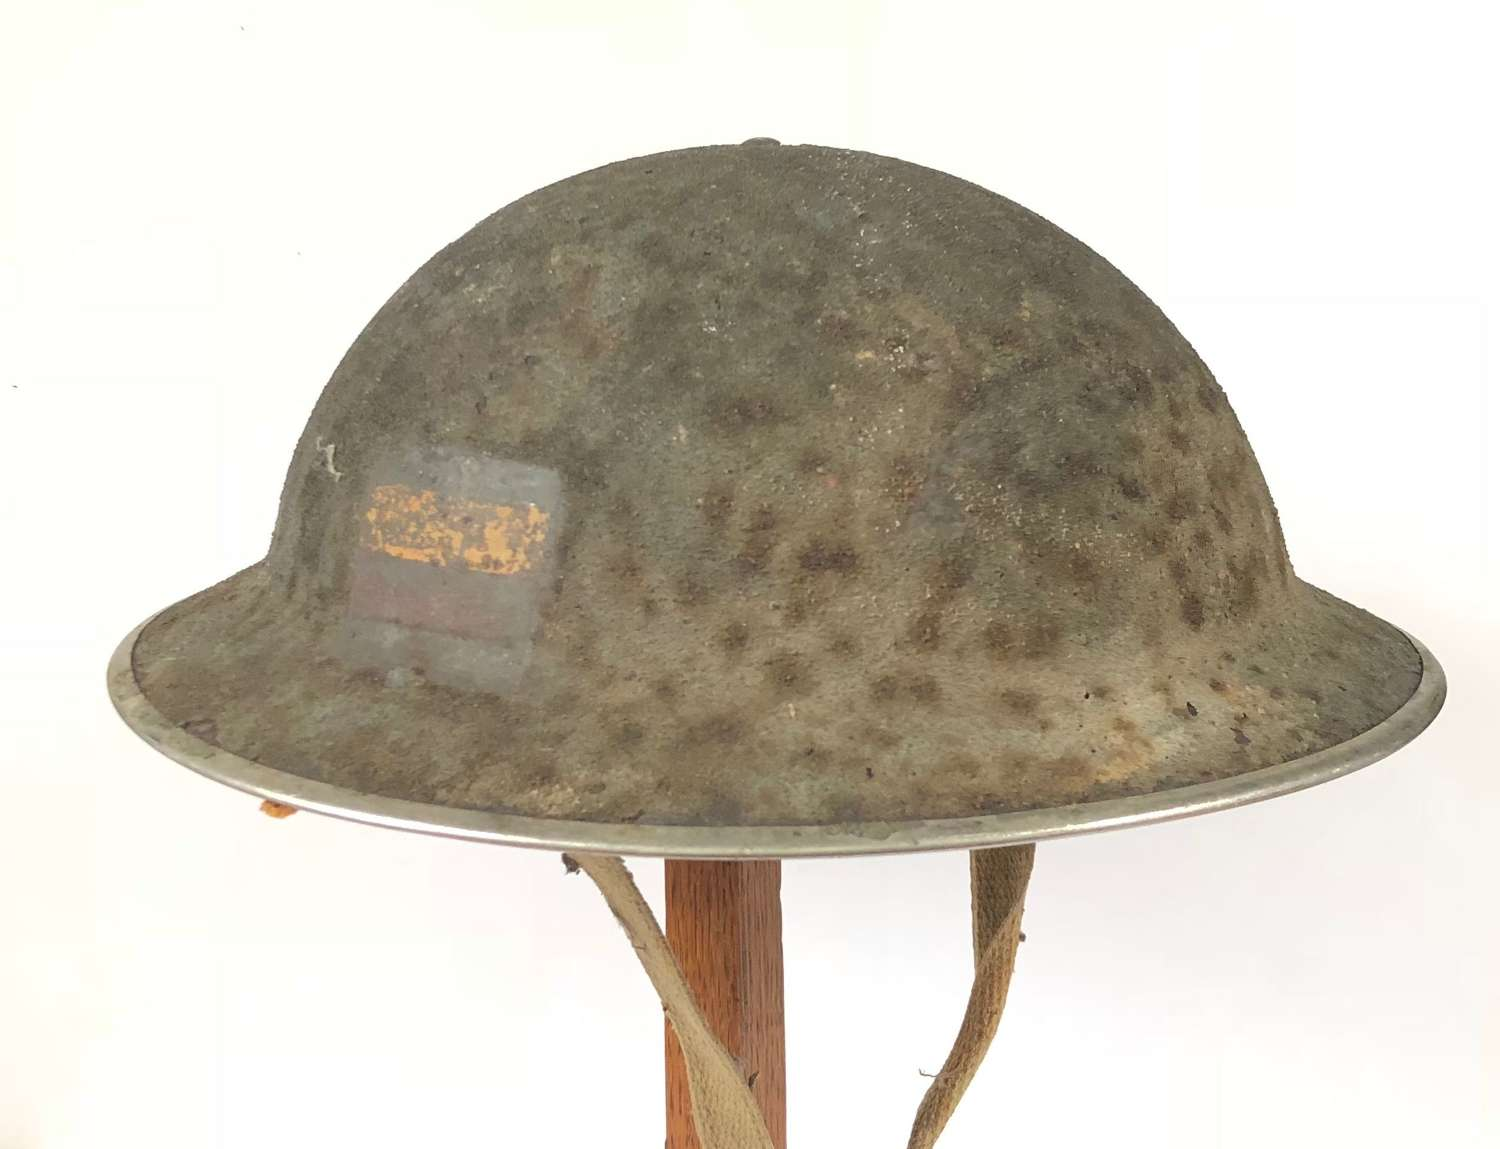 WW2 1945 Dated Divisional / Unit Marked Steel Helmet.